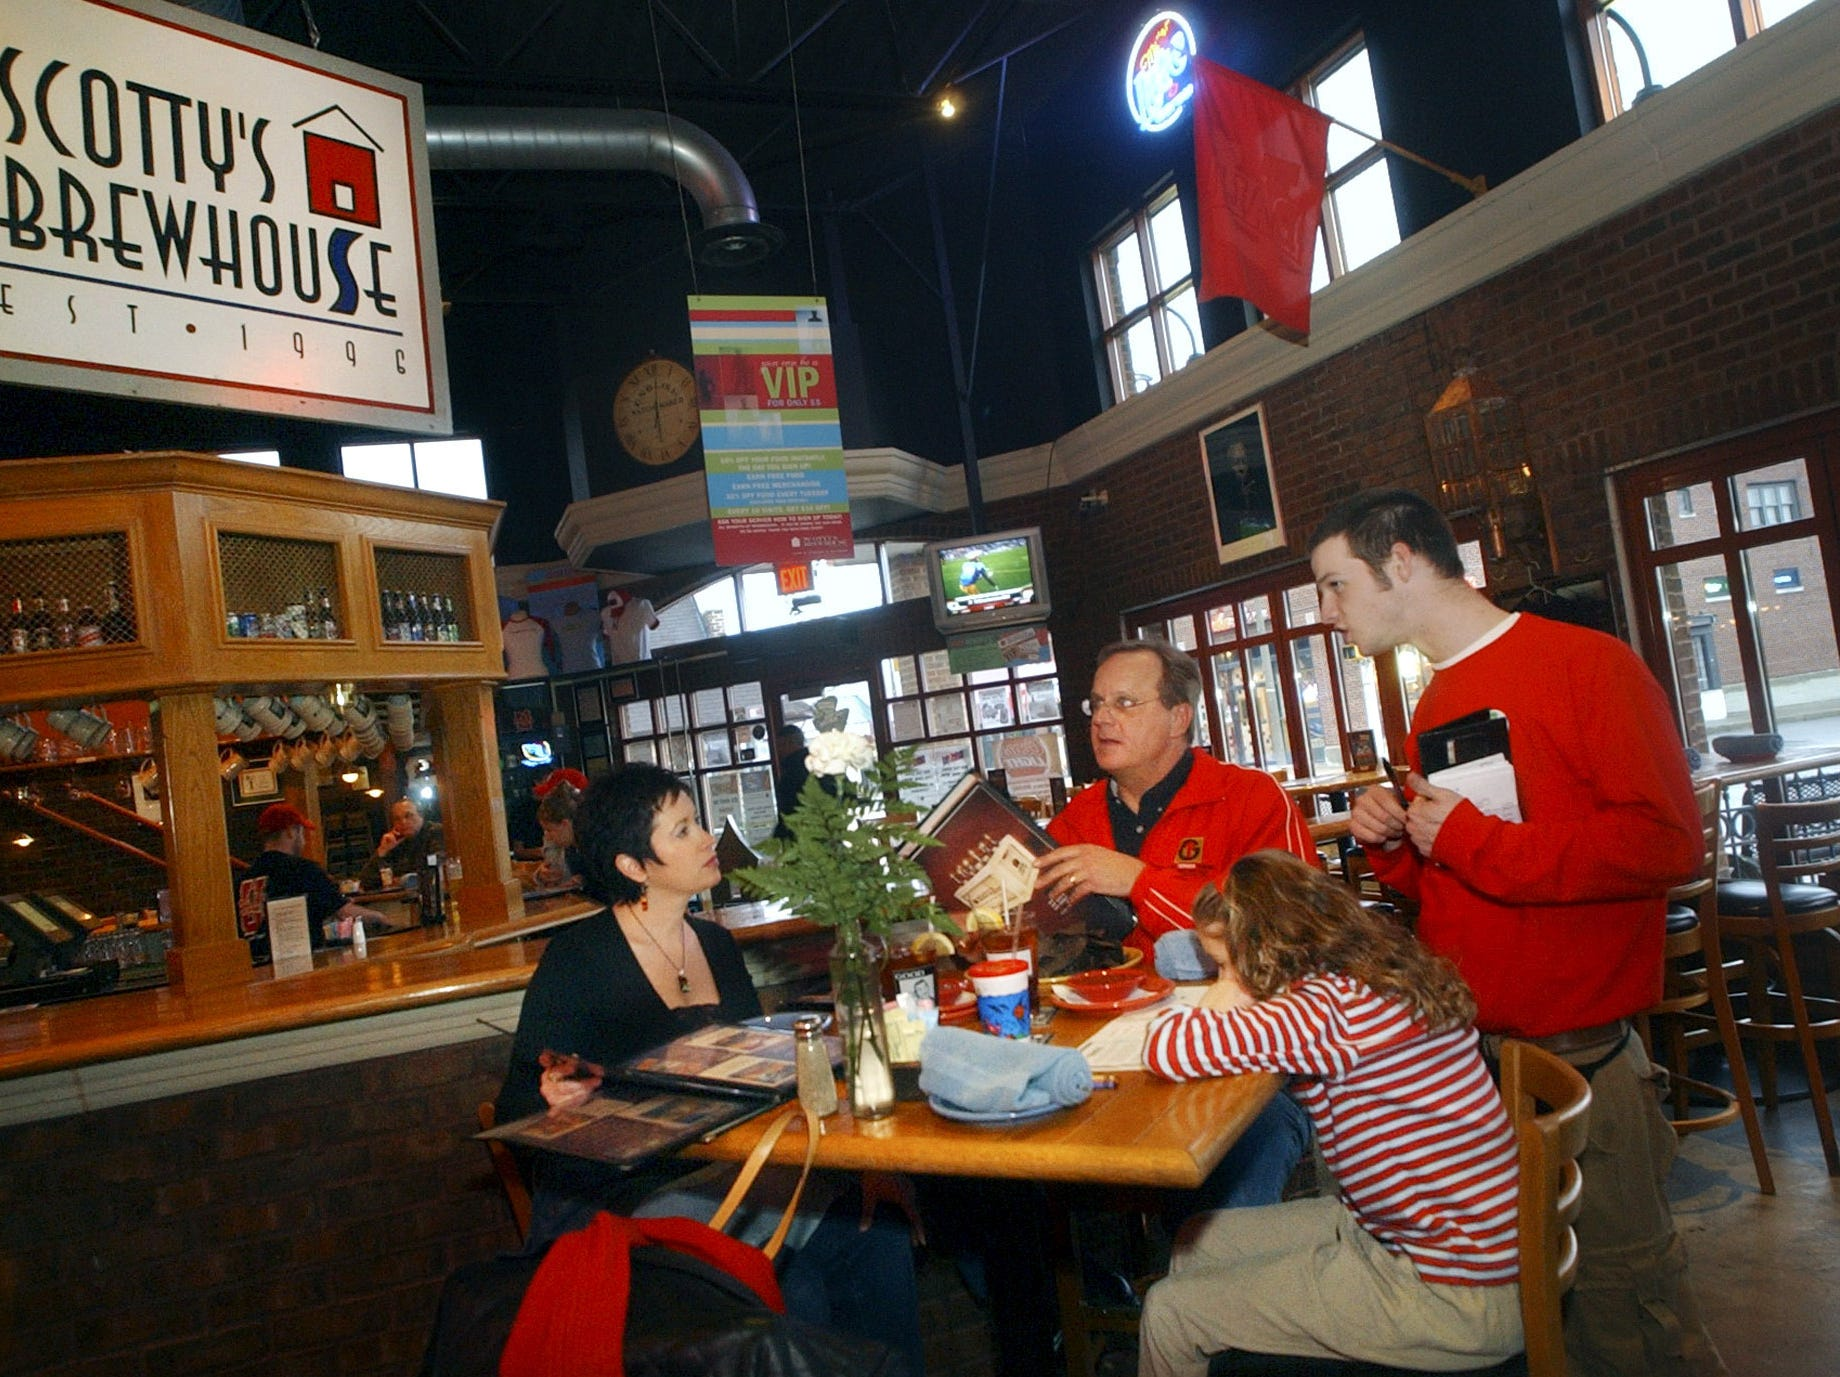 A family places dinner orders at Scotty's Brewhouse in The Village in this photo form 2006.